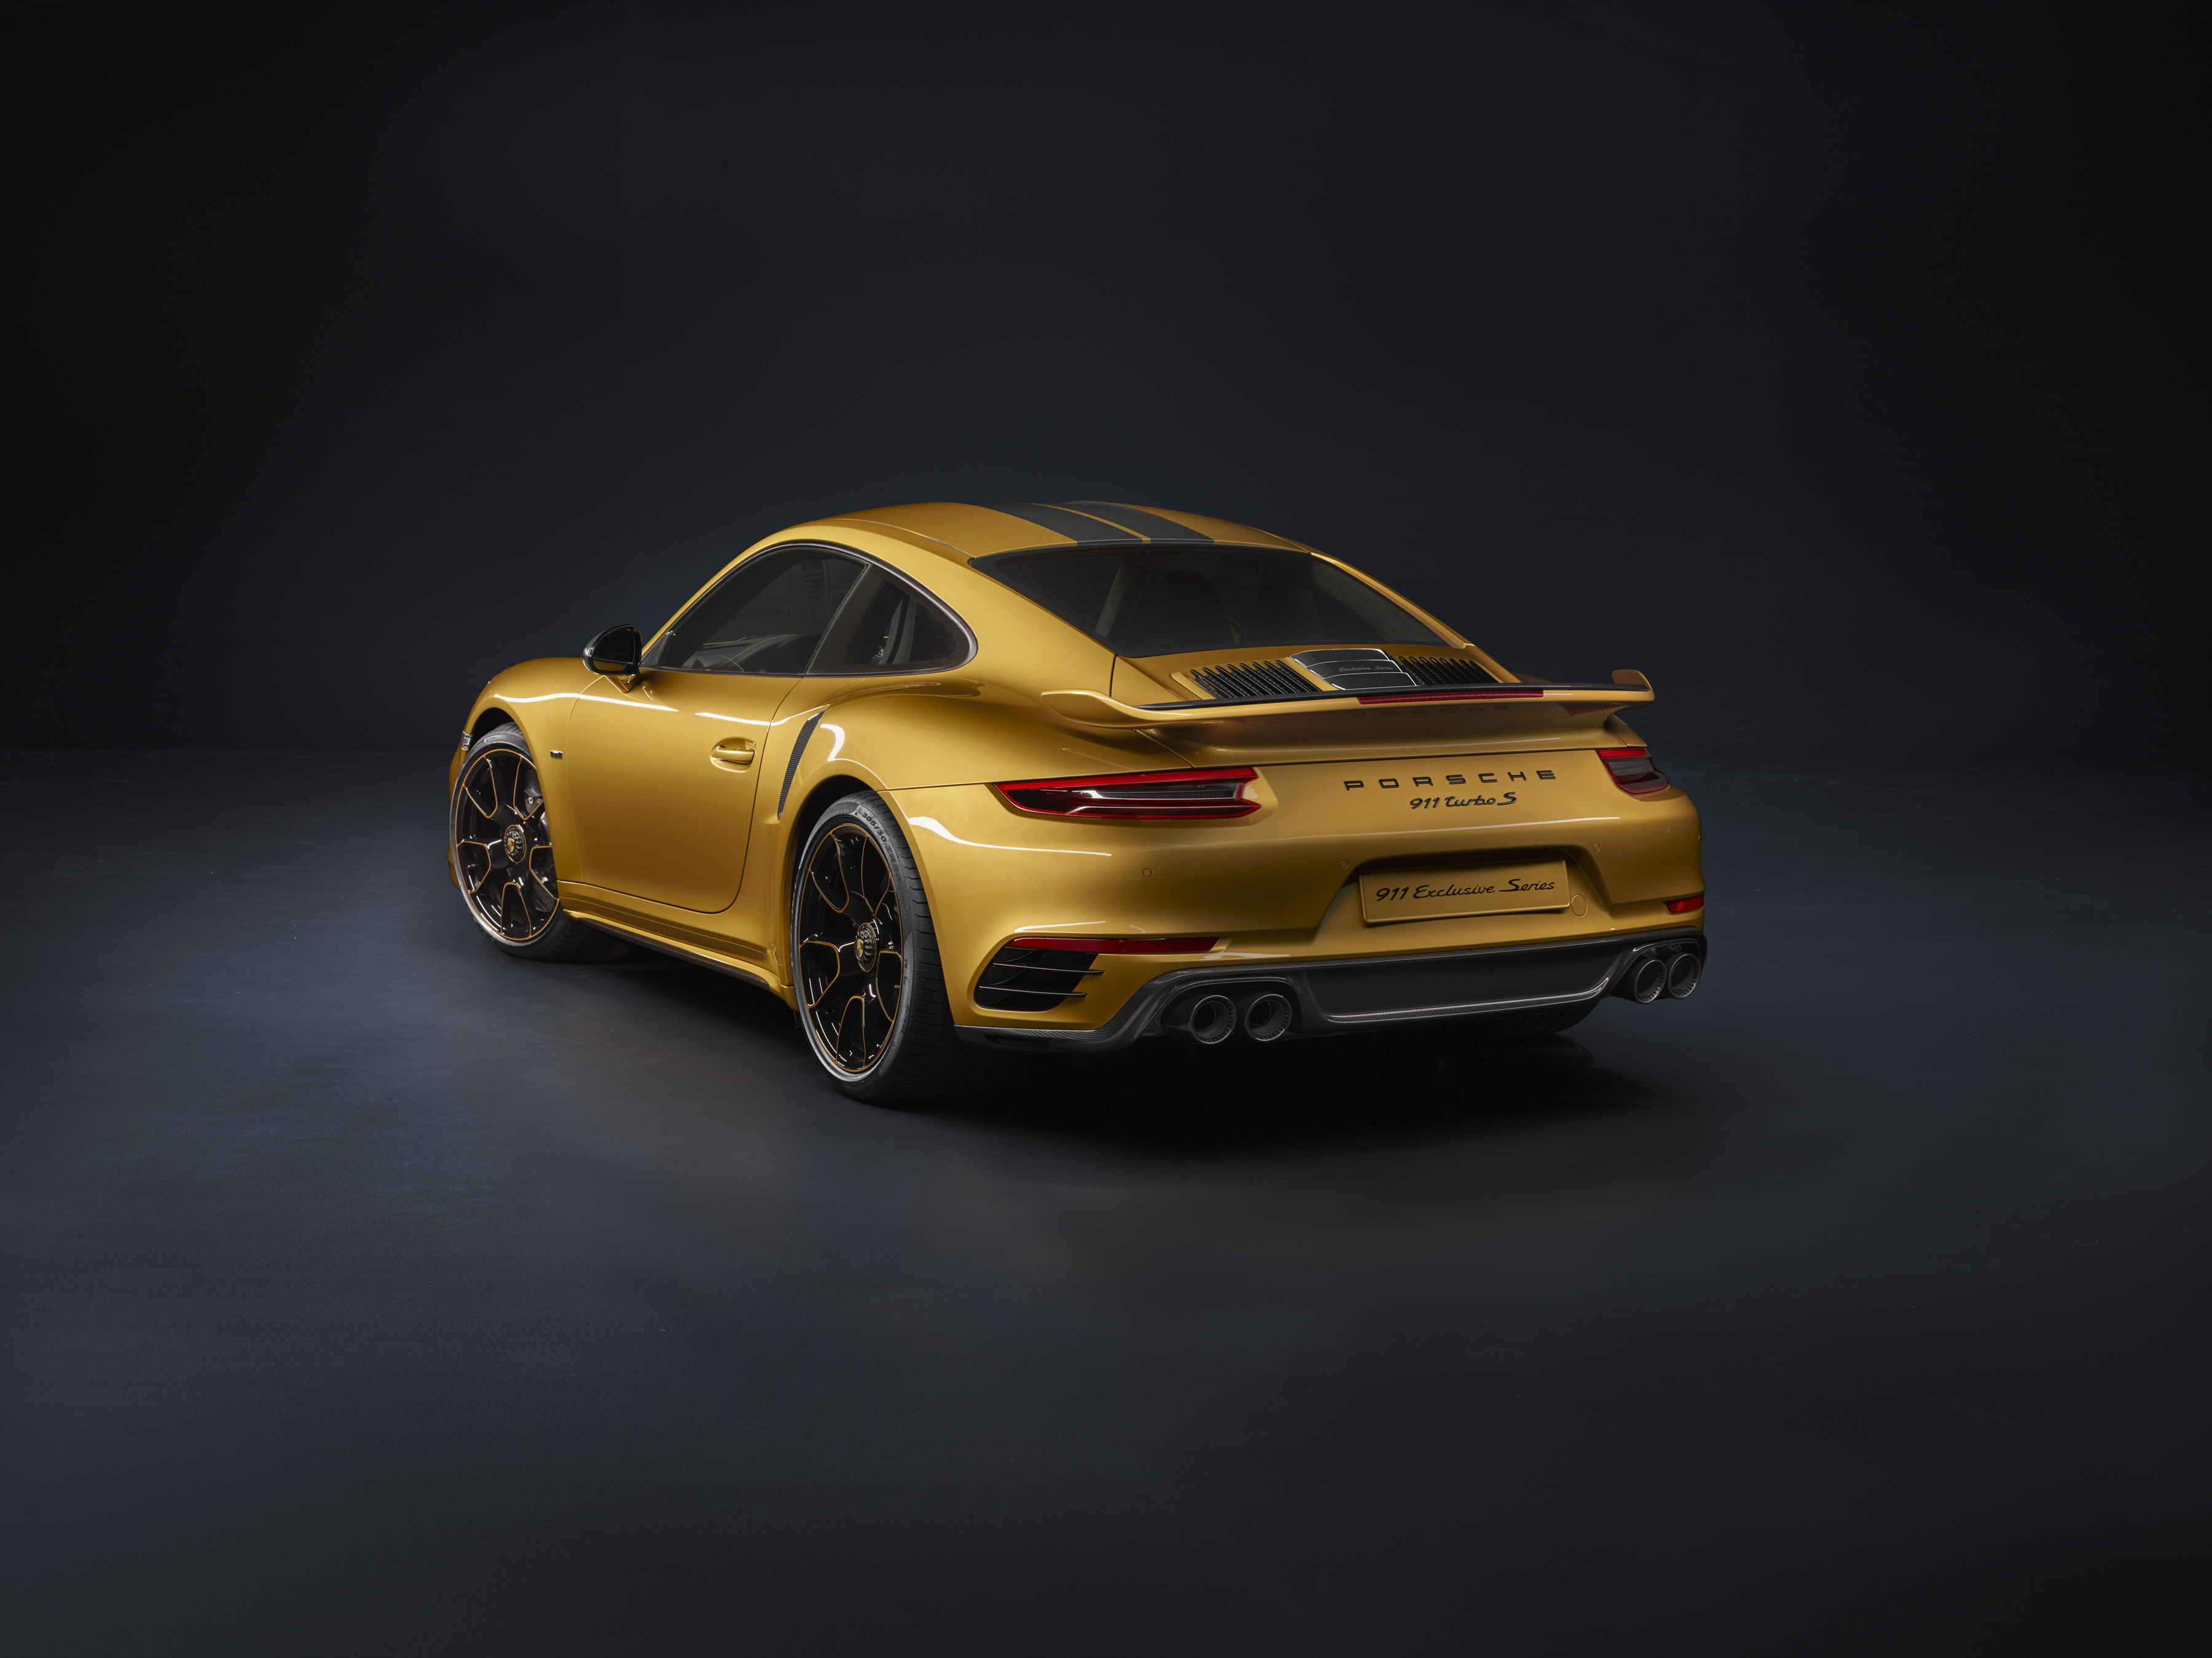 Porsche 911 Turbo S 2017 Hd Cars 4k Wallpapers Images